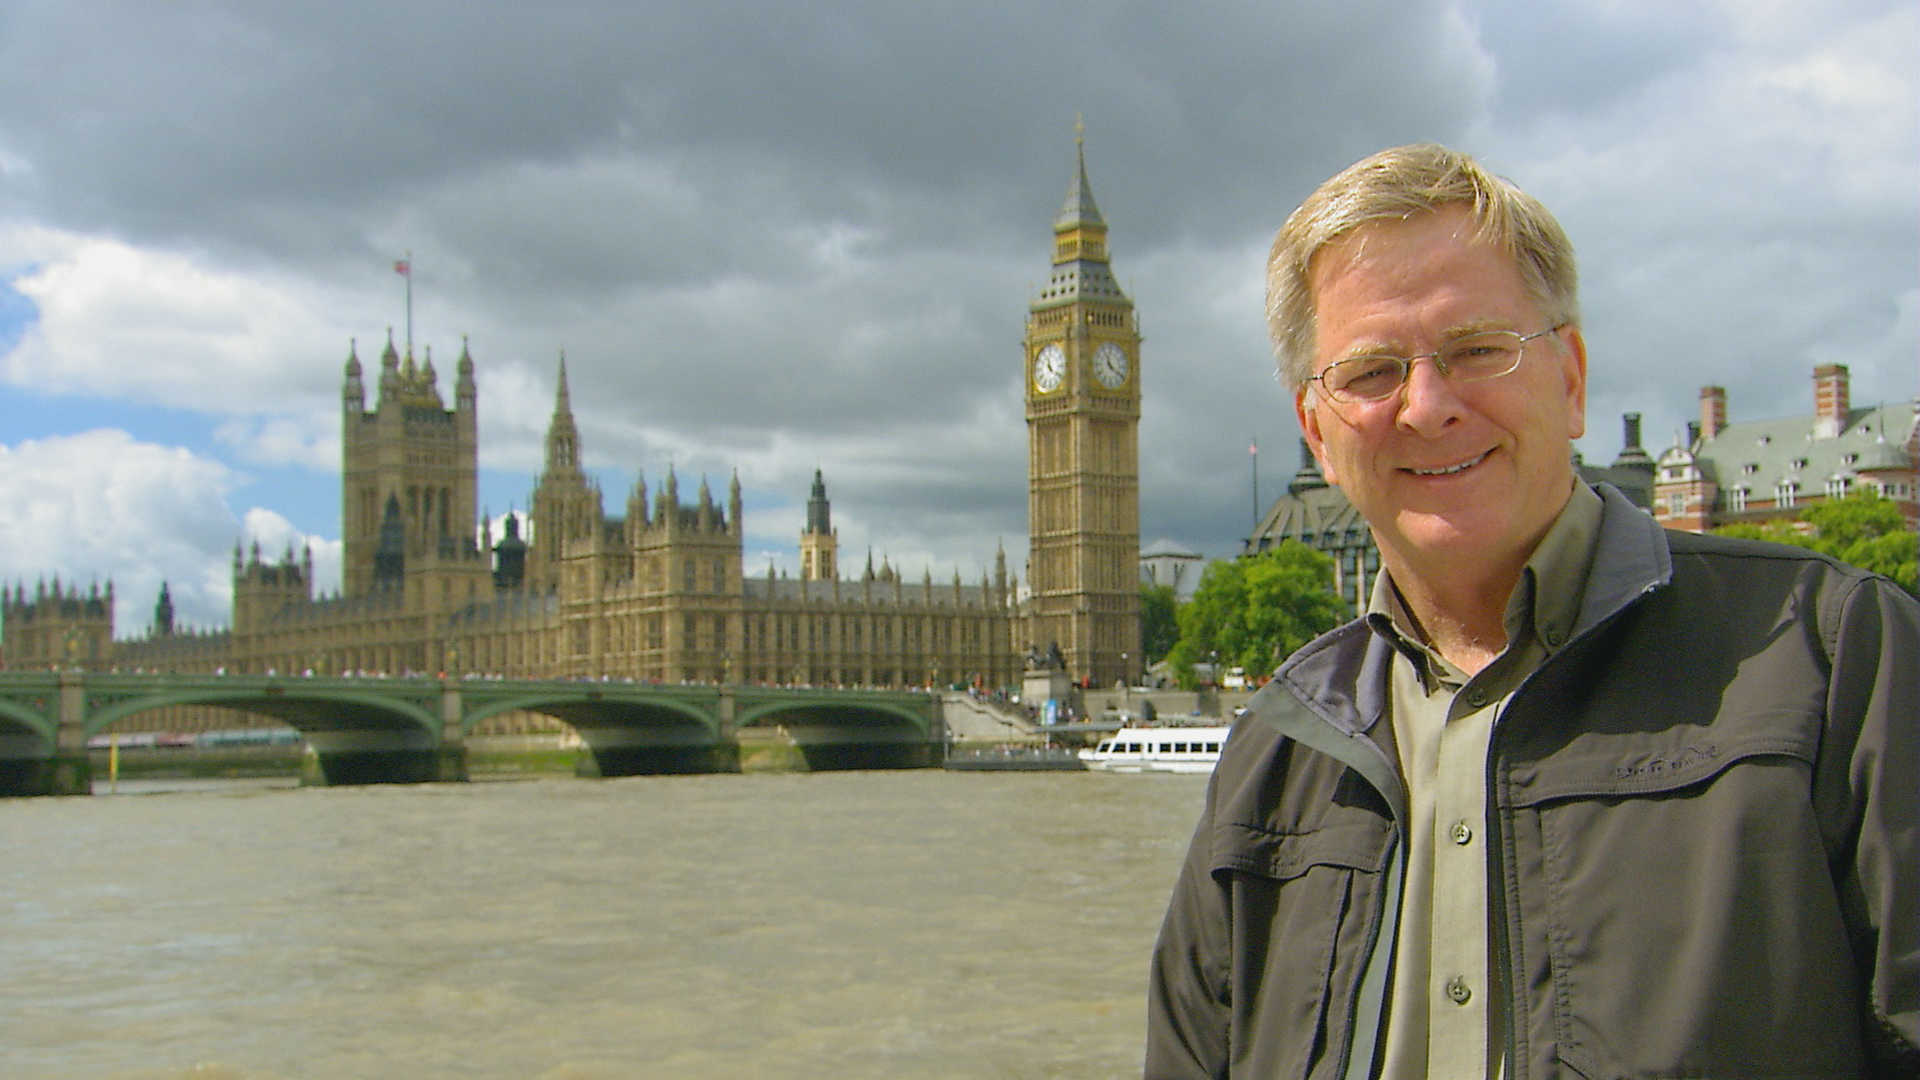 London: Rick Steves and the Parliament buildings